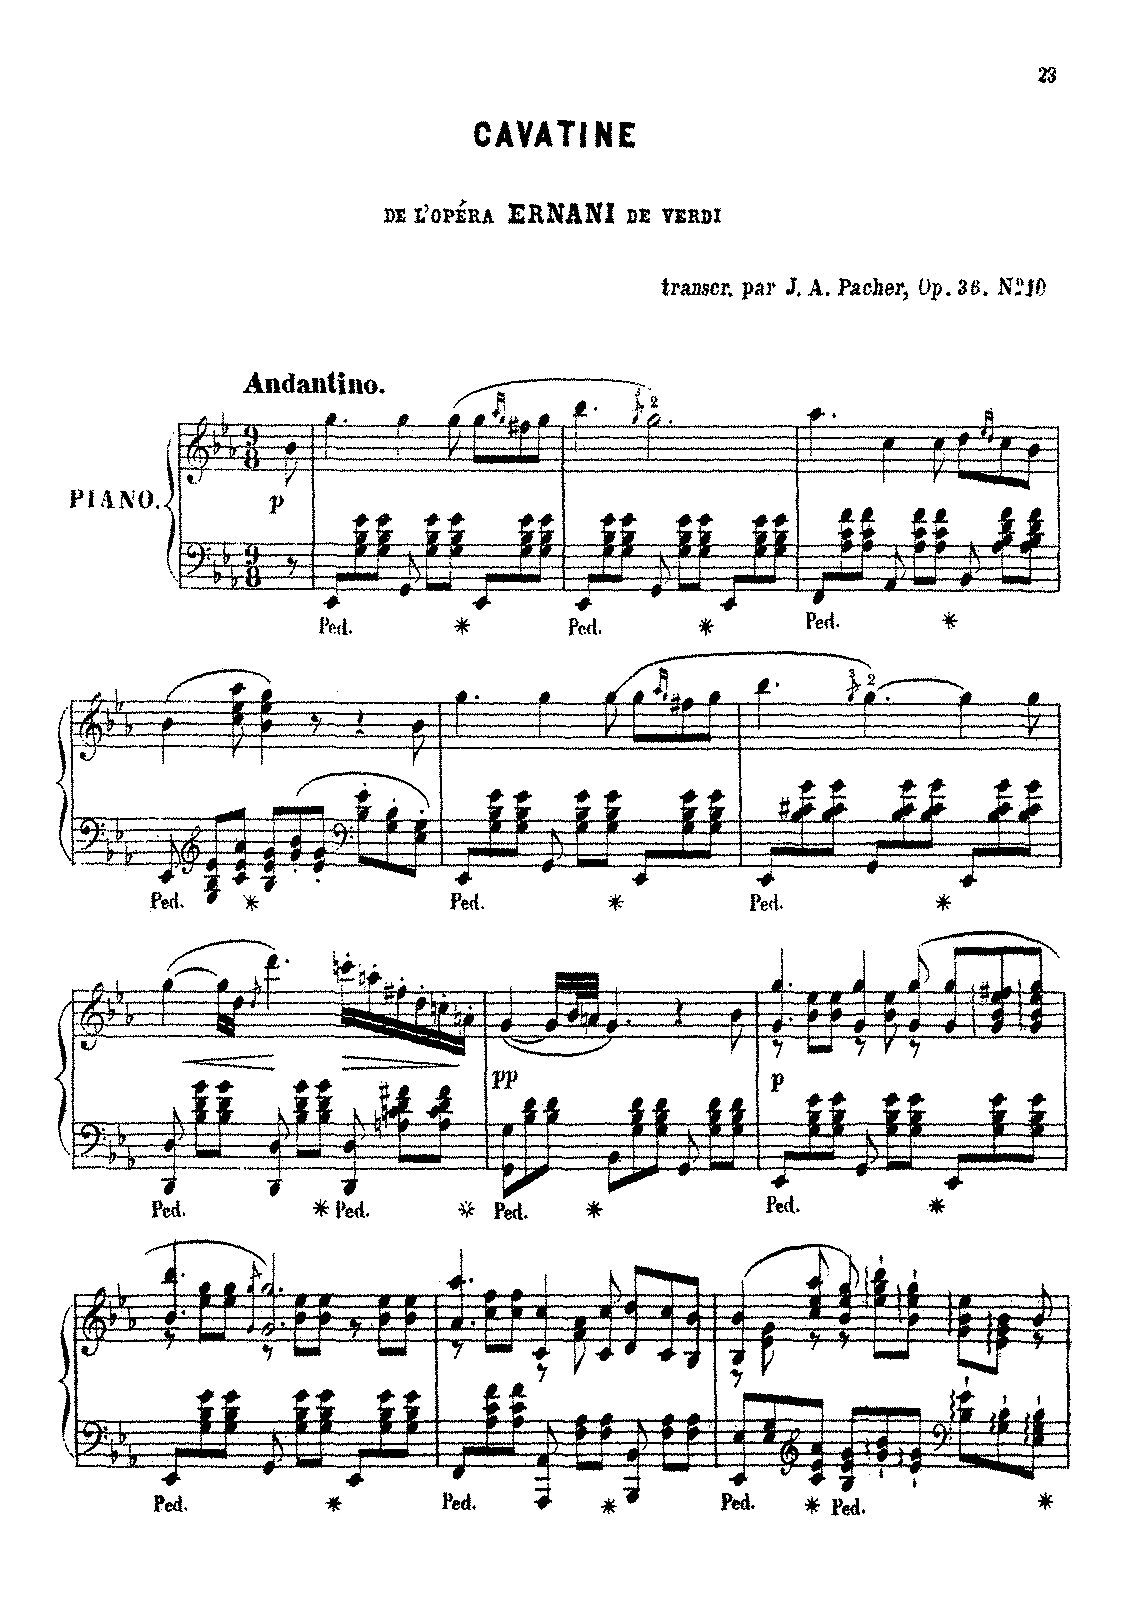 PMLP613090-Pacher - 36 Melodienschatz - Transcription - Verdi - Ernani - Cavatine Op.36 No.10 - Jurgenson.pdf